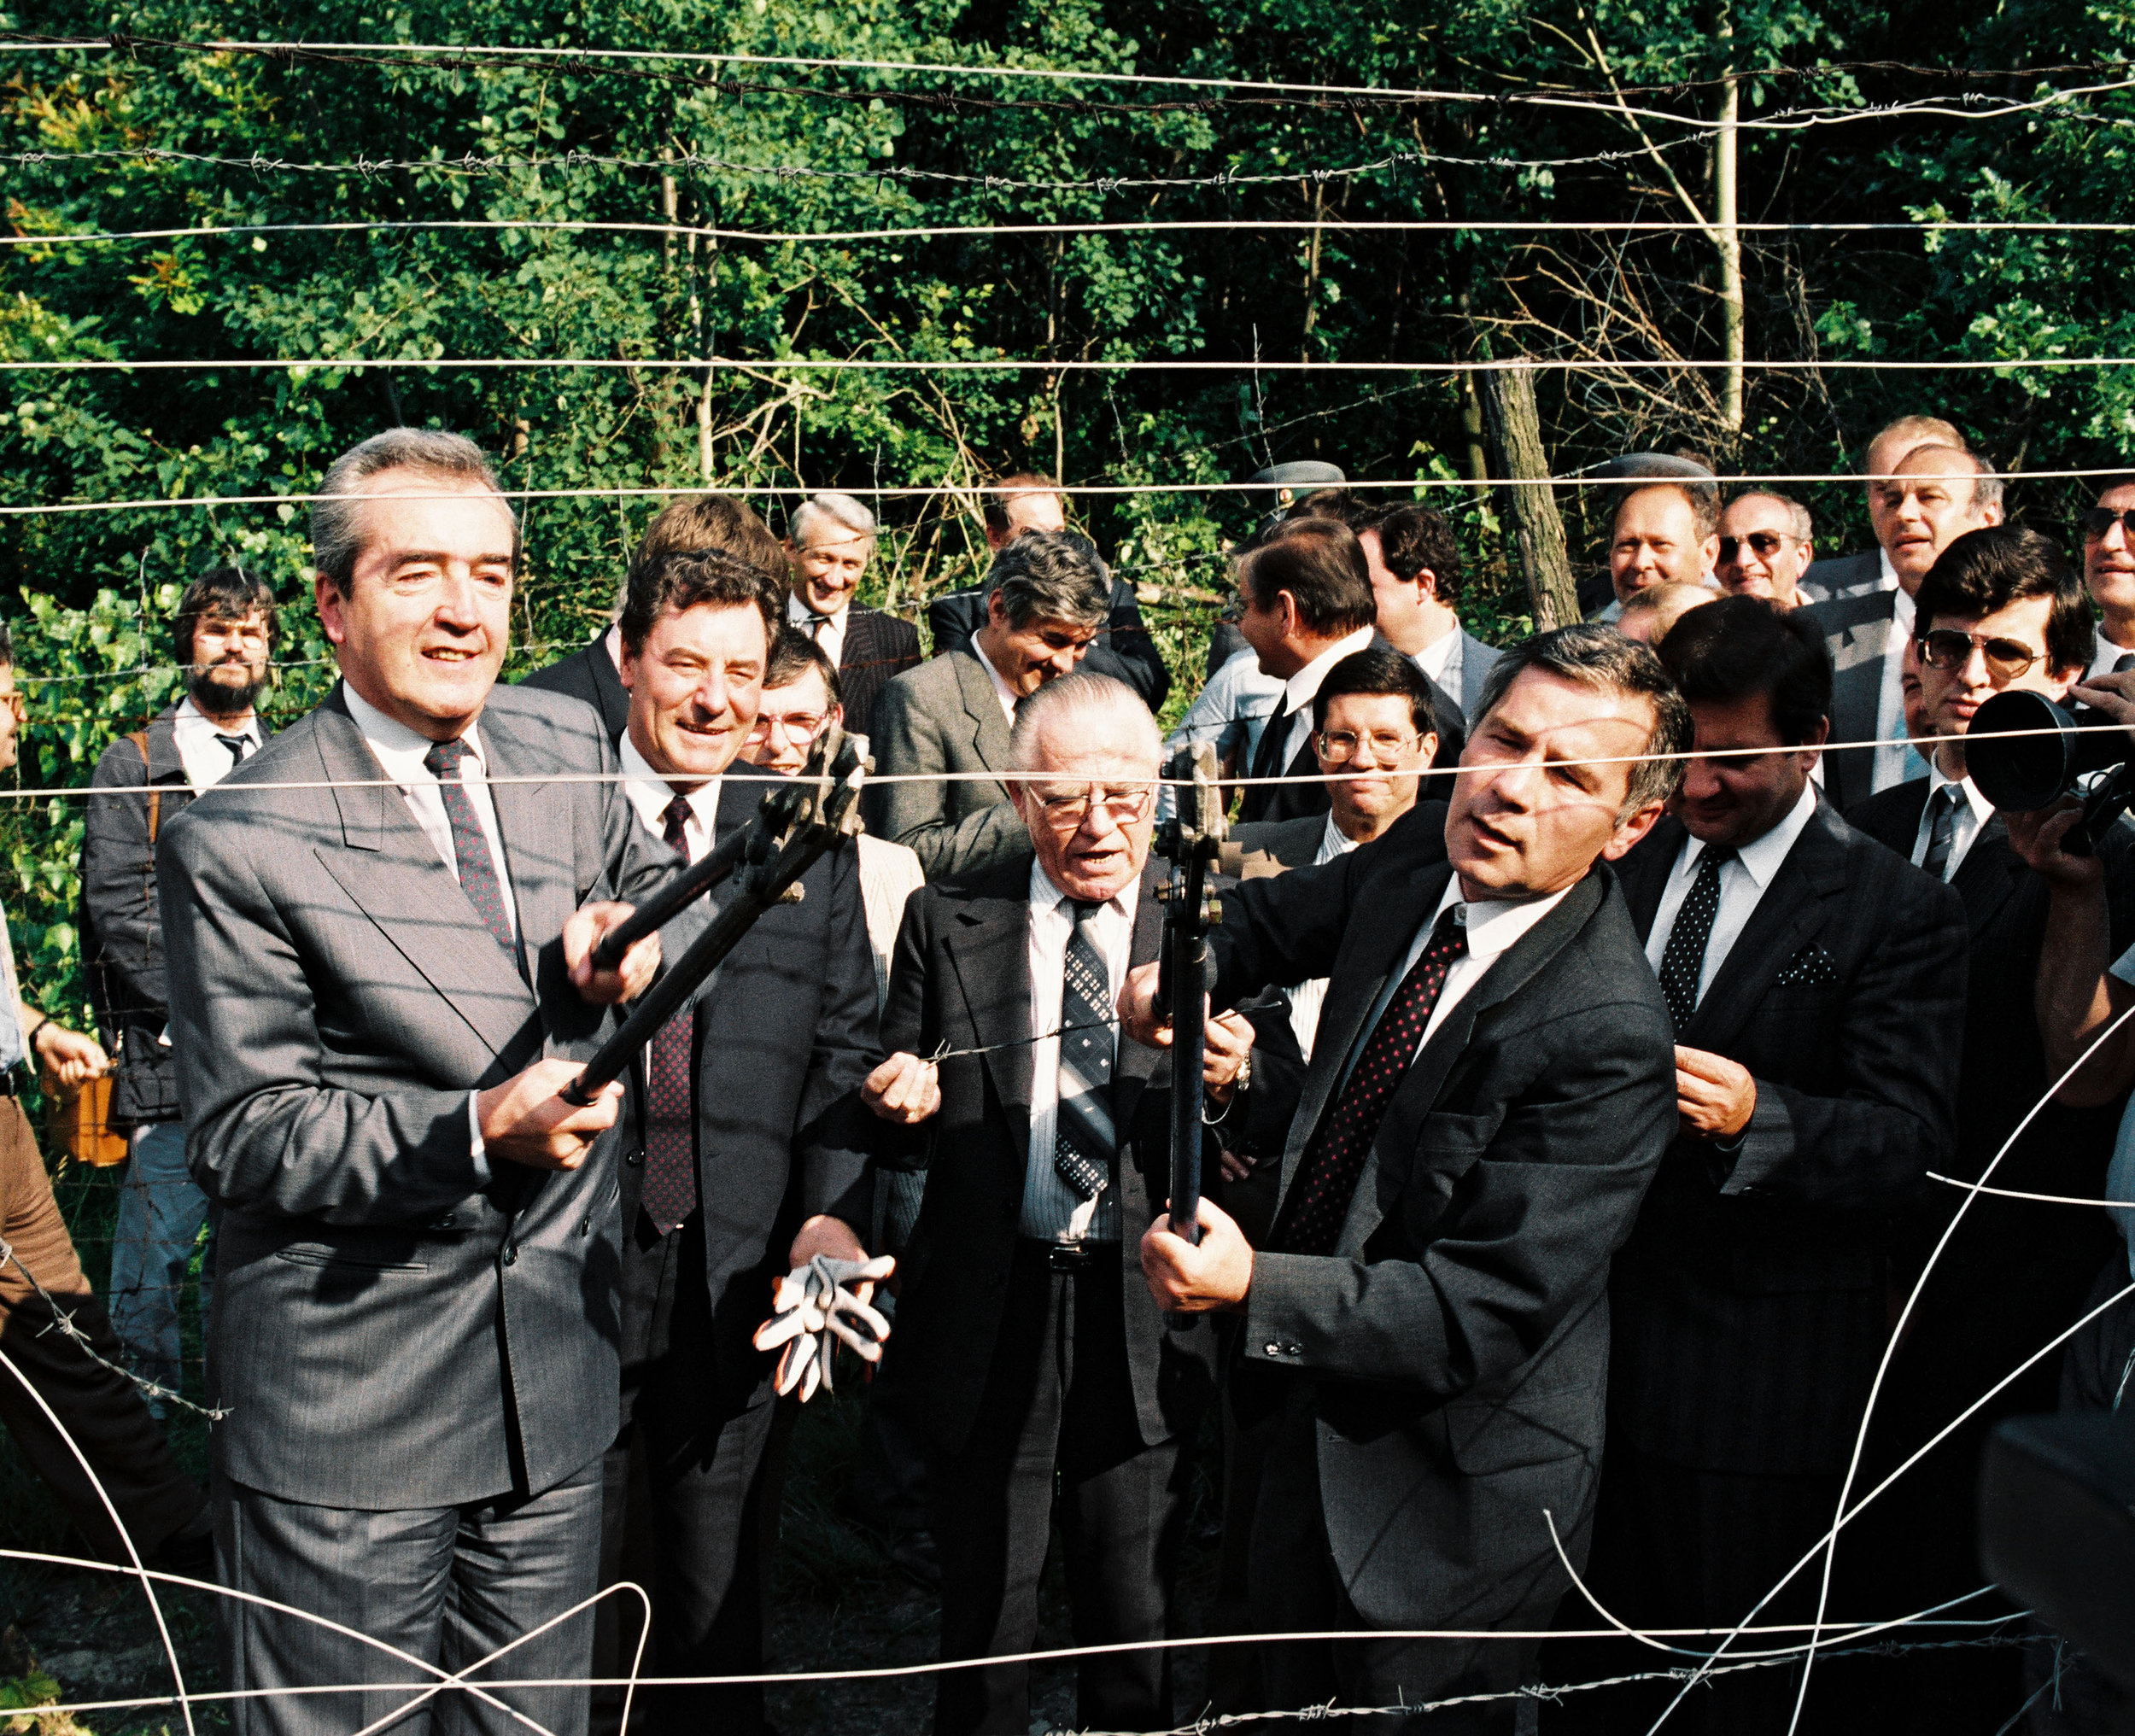 Austrian Foreign Minister Alois Mock and his Hungarian counterpart Gyula Horn cut the Iron Curtain in 1989. HOPI-MEDIA e.U. Bernhard J. Holzner